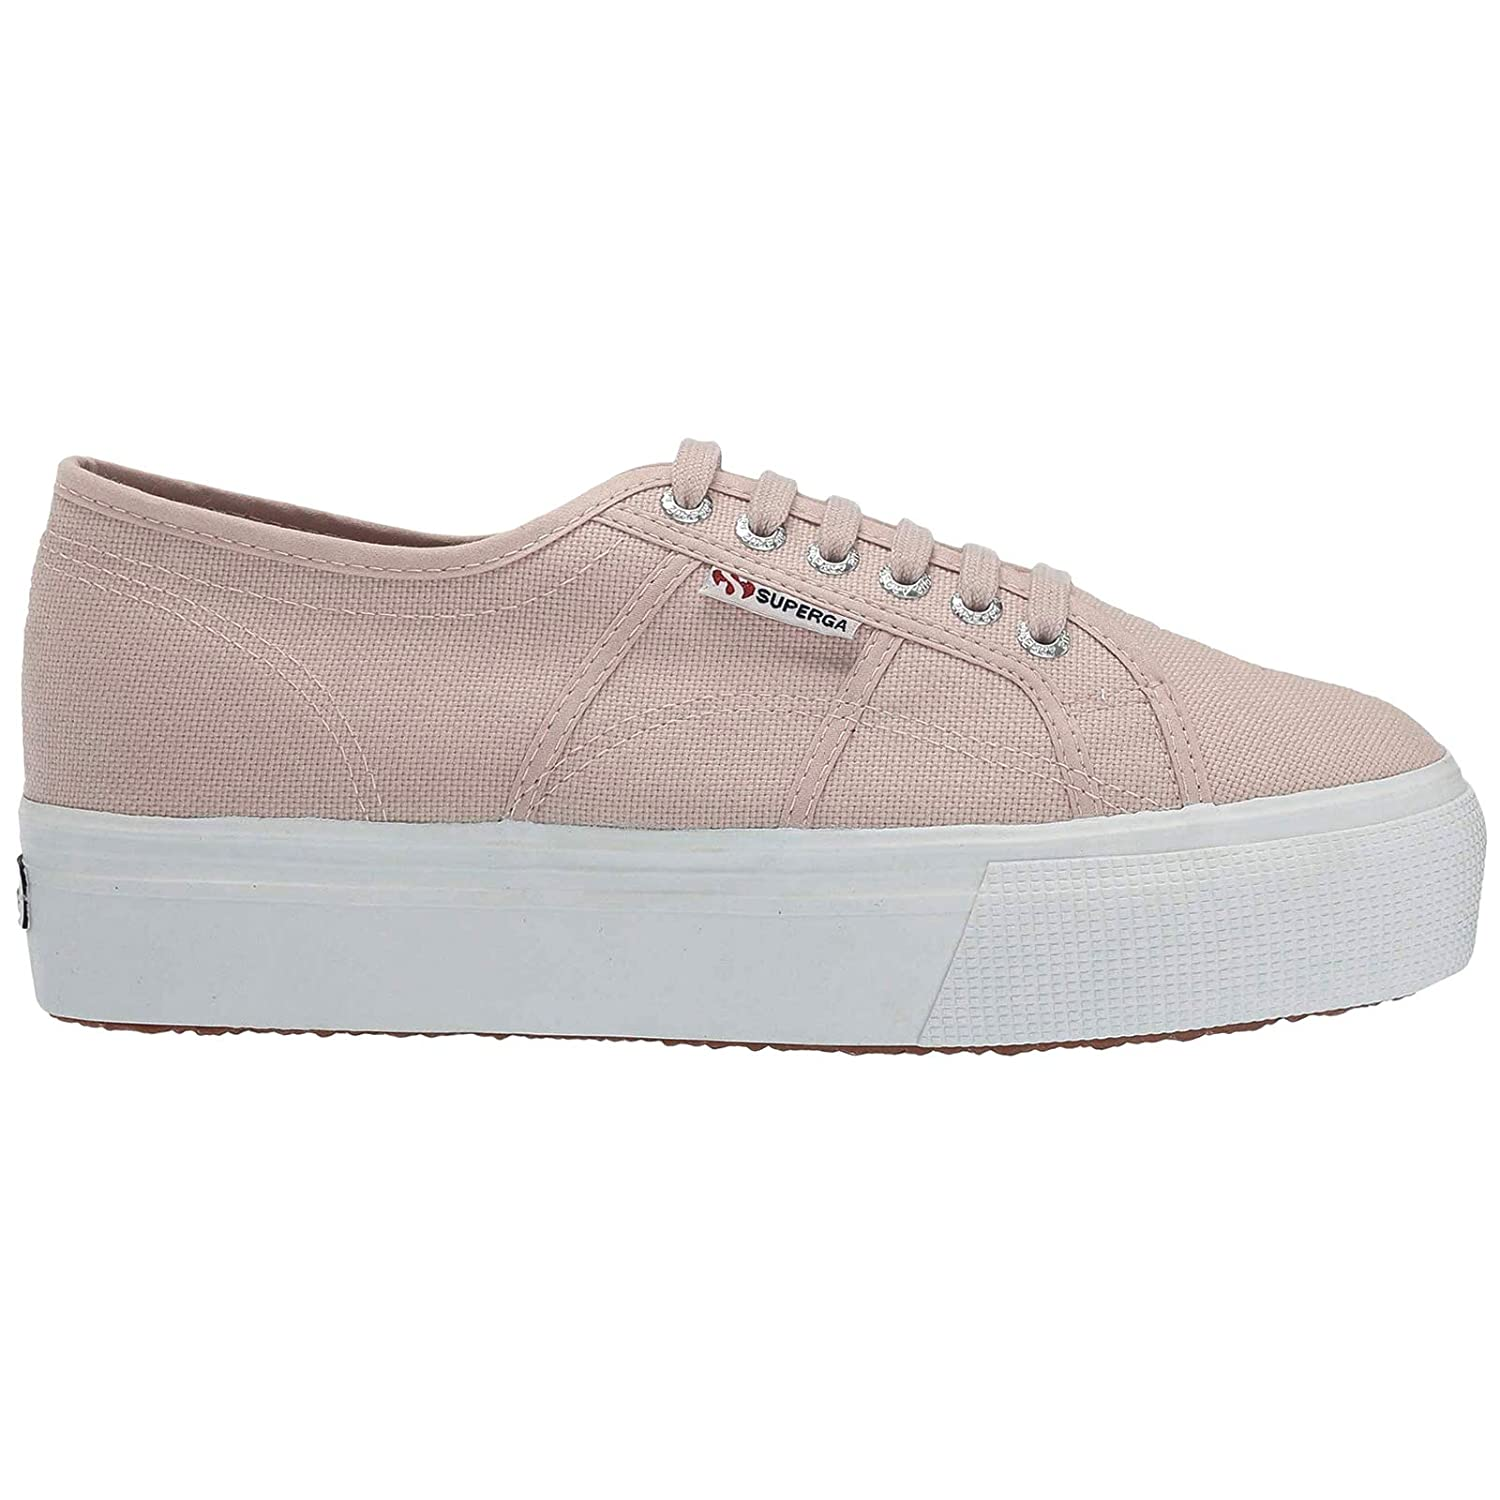 Superga 2790acotw Linea Up And Down, scarpe da ginnastica Donna | Outlet Store Online